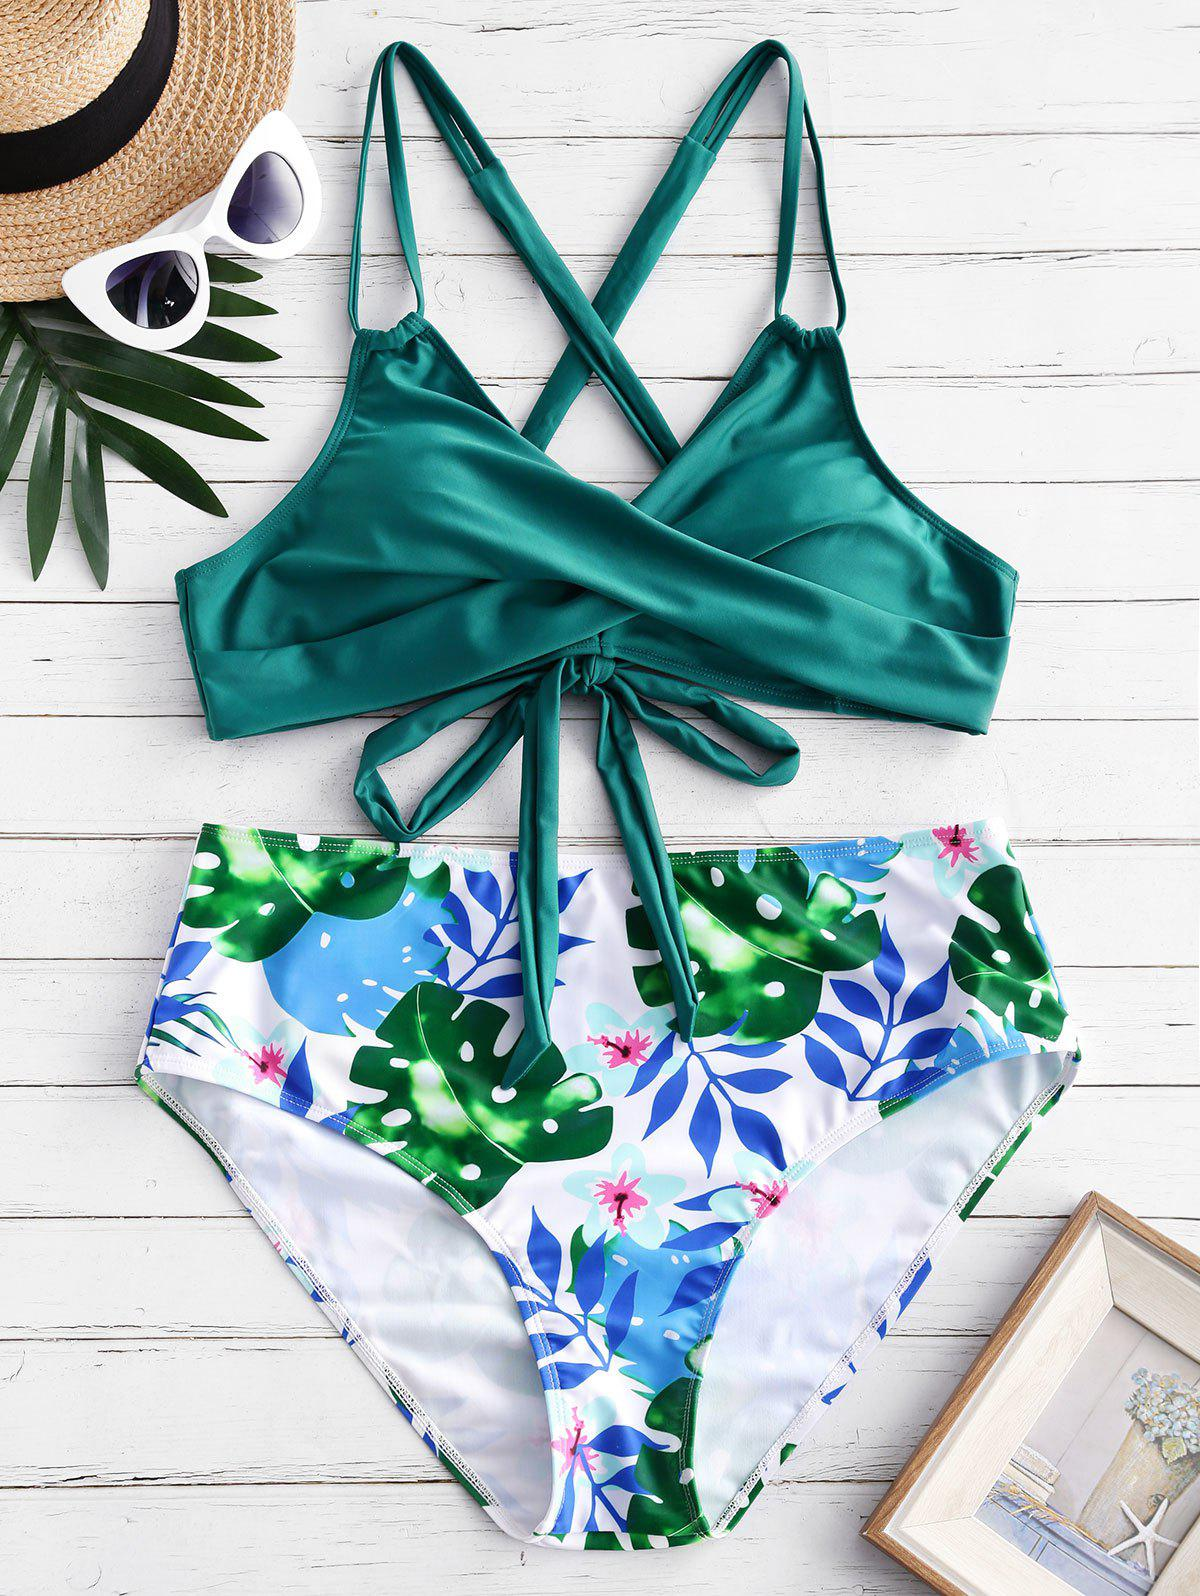 Outfits Criss Cross Lace Up Leaves Print Plus Size Bikini Swimsuit